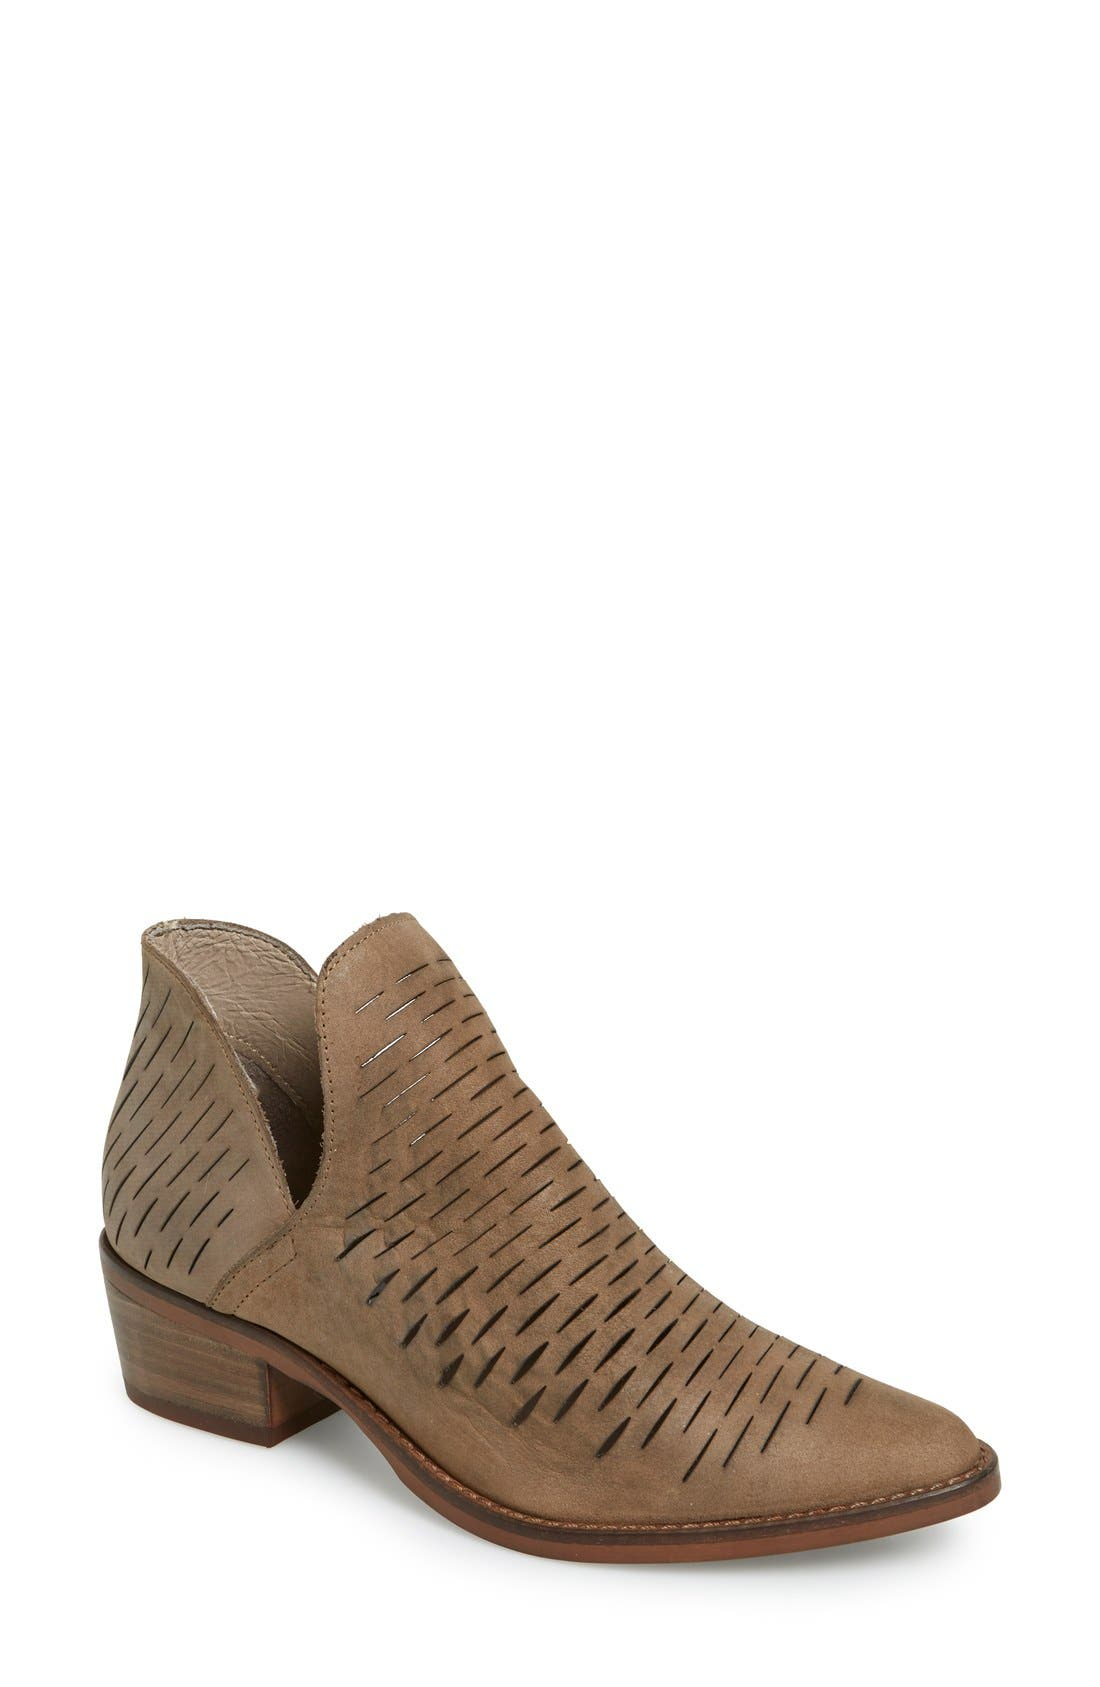 'Arowe' Perforated Bootie,                         Main,                         color, 020